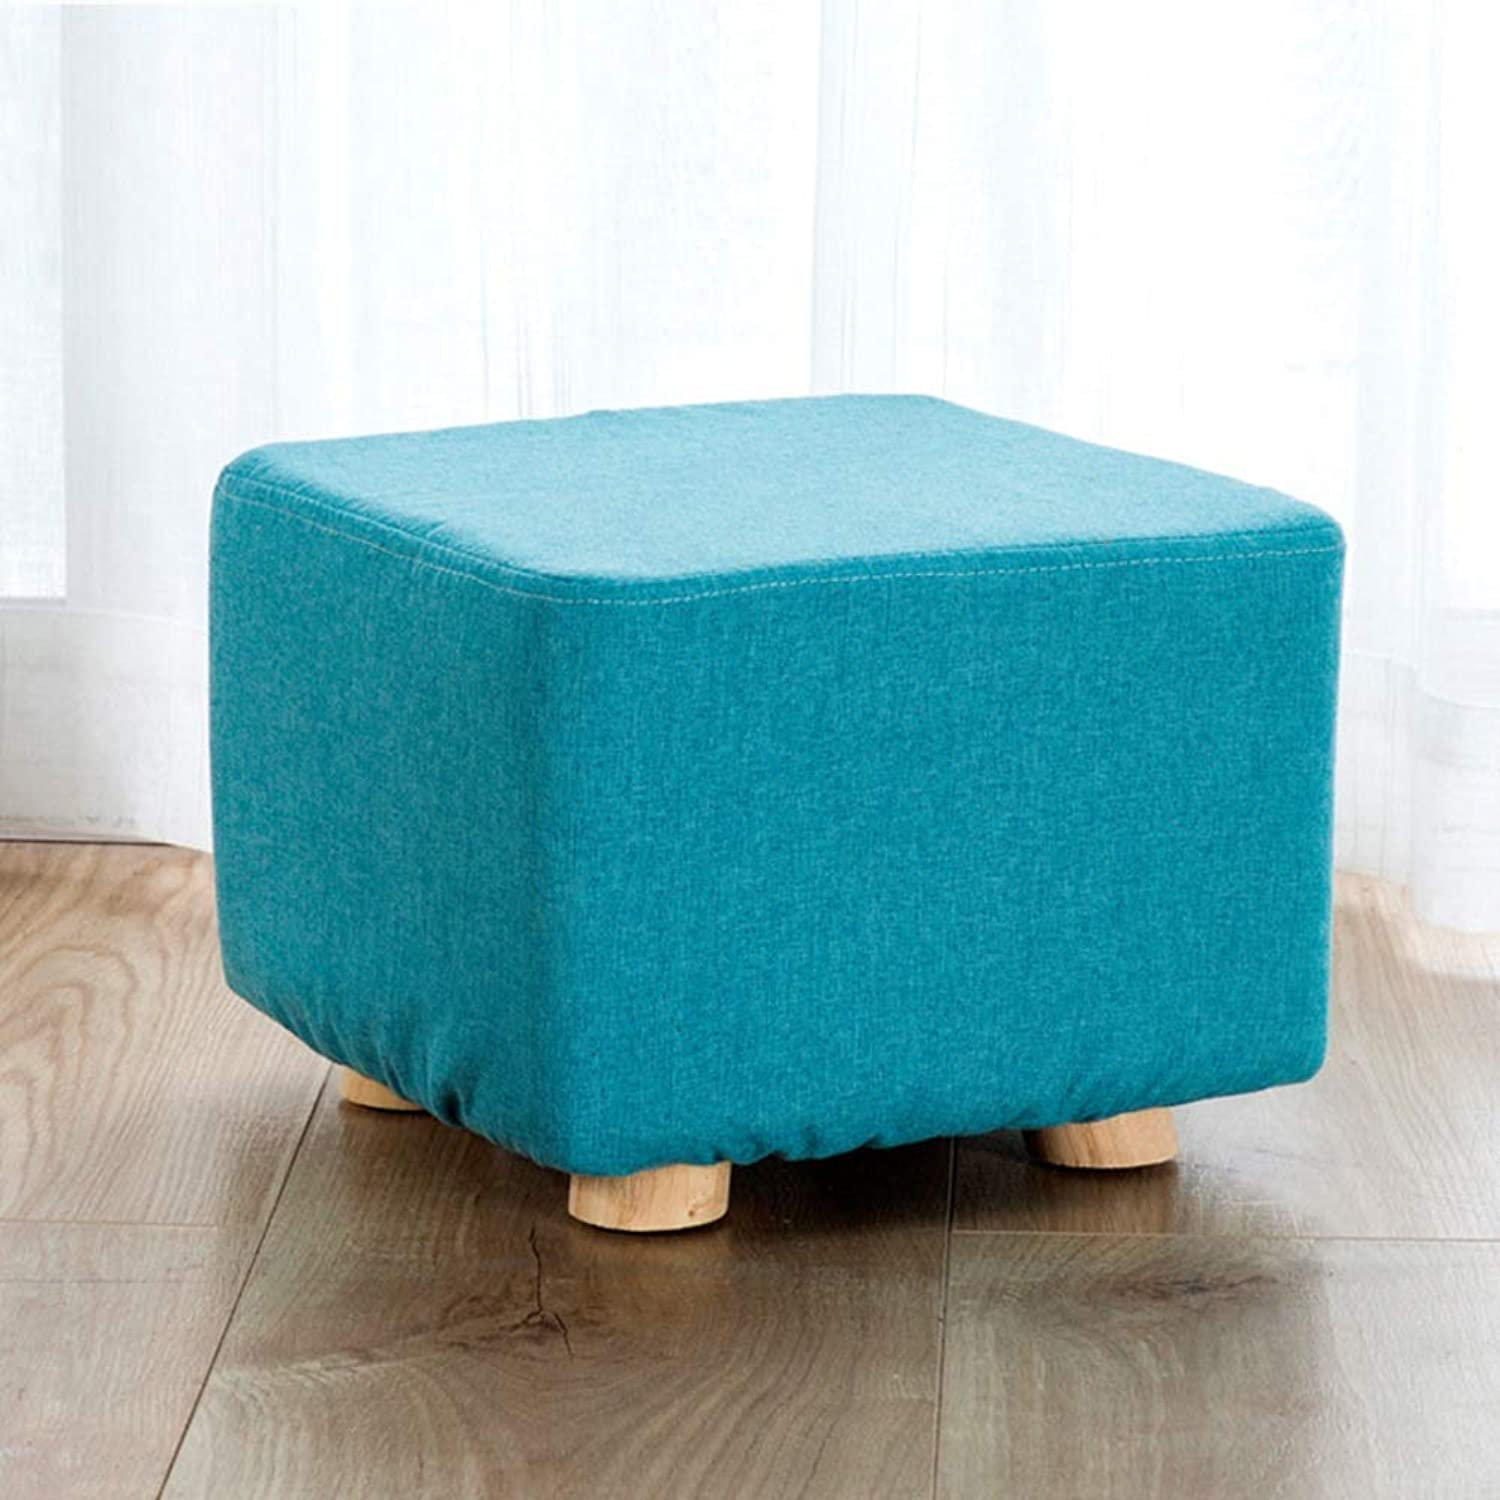 Square Wooden Footstool,Modern Simple shoes Bench Stool for Living Room Bedroom Office-C 25x25x20cm)-C,25x25x20cm